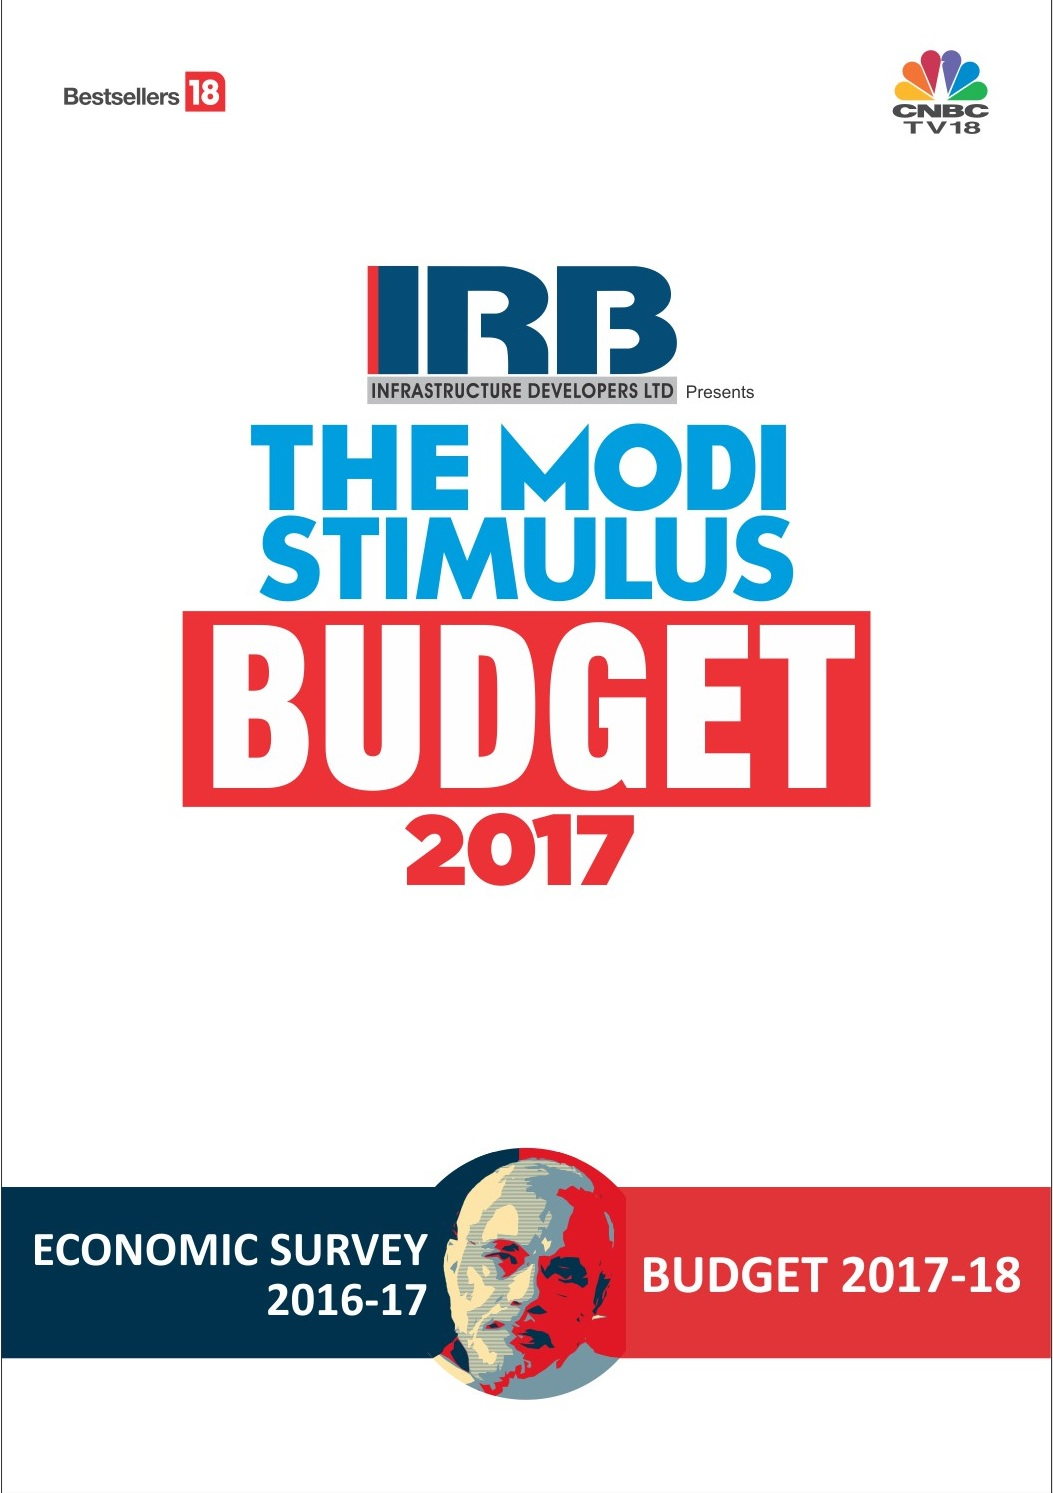 Budget 17- The Modi Stimulus